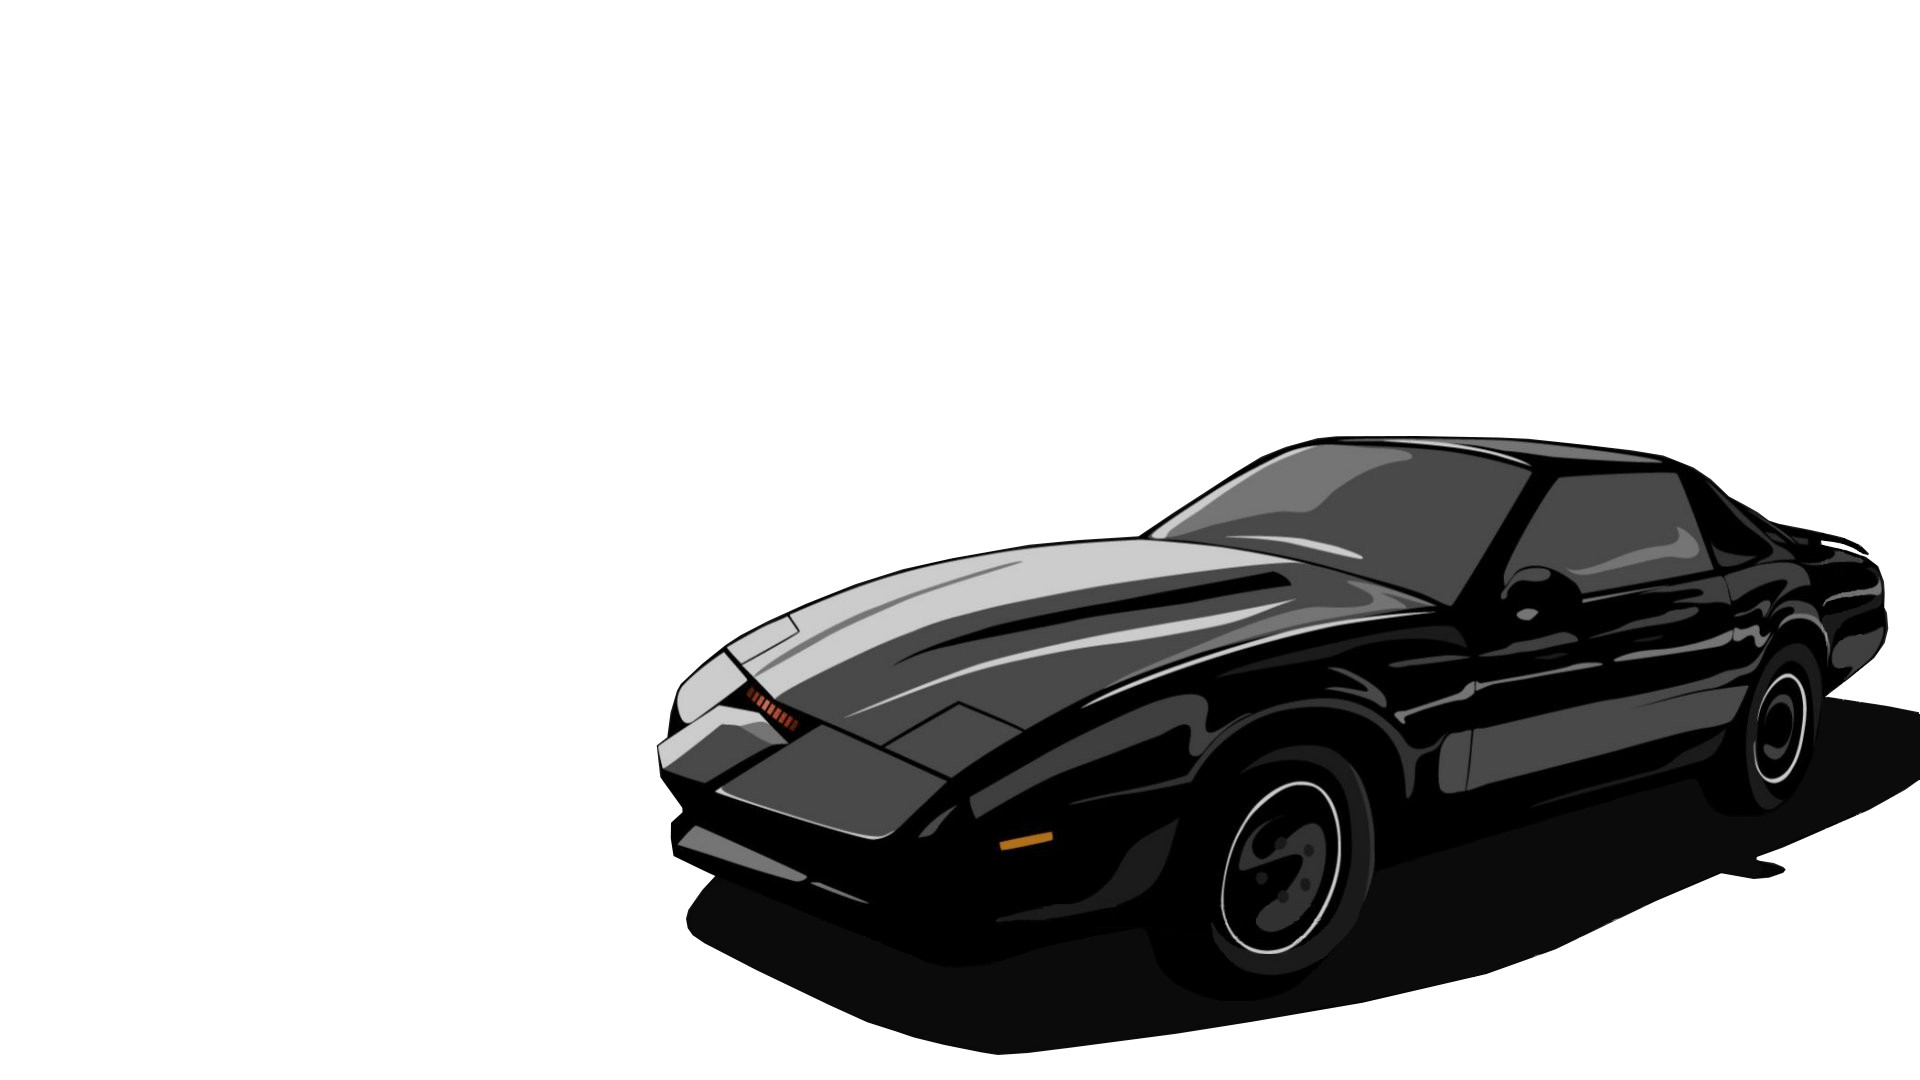 1920x1080 Knight Rider Wallpapers - Wallpaper Cave